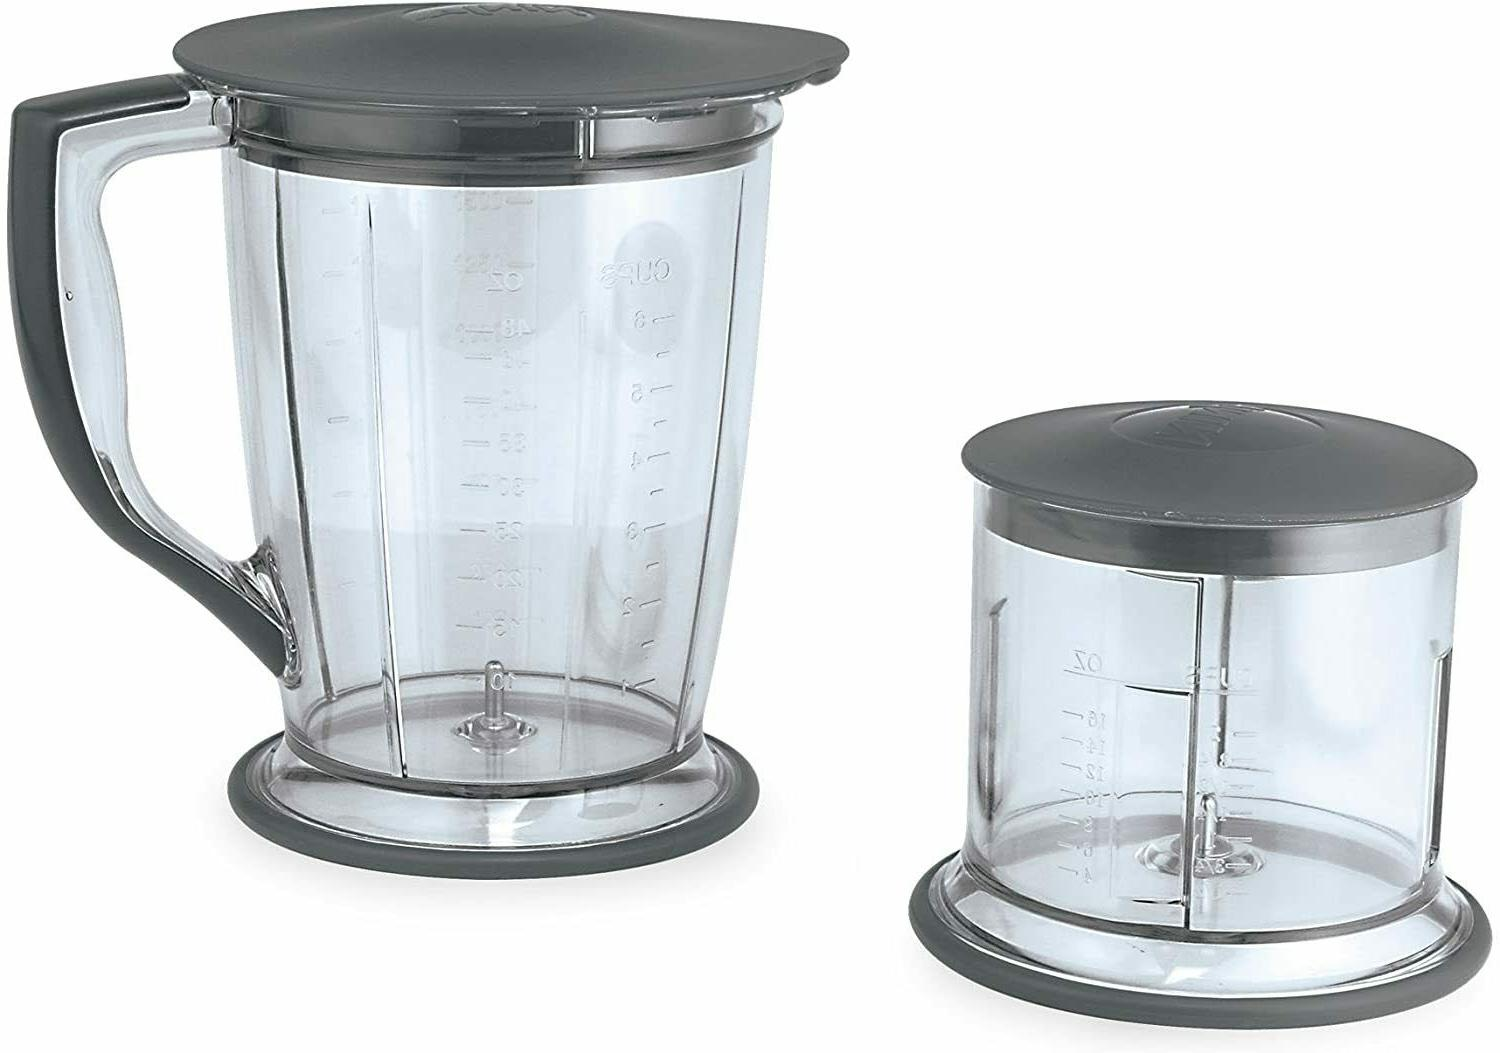 400-Watt Blender/Food Processor for Frozen Chopping and Food Prep.